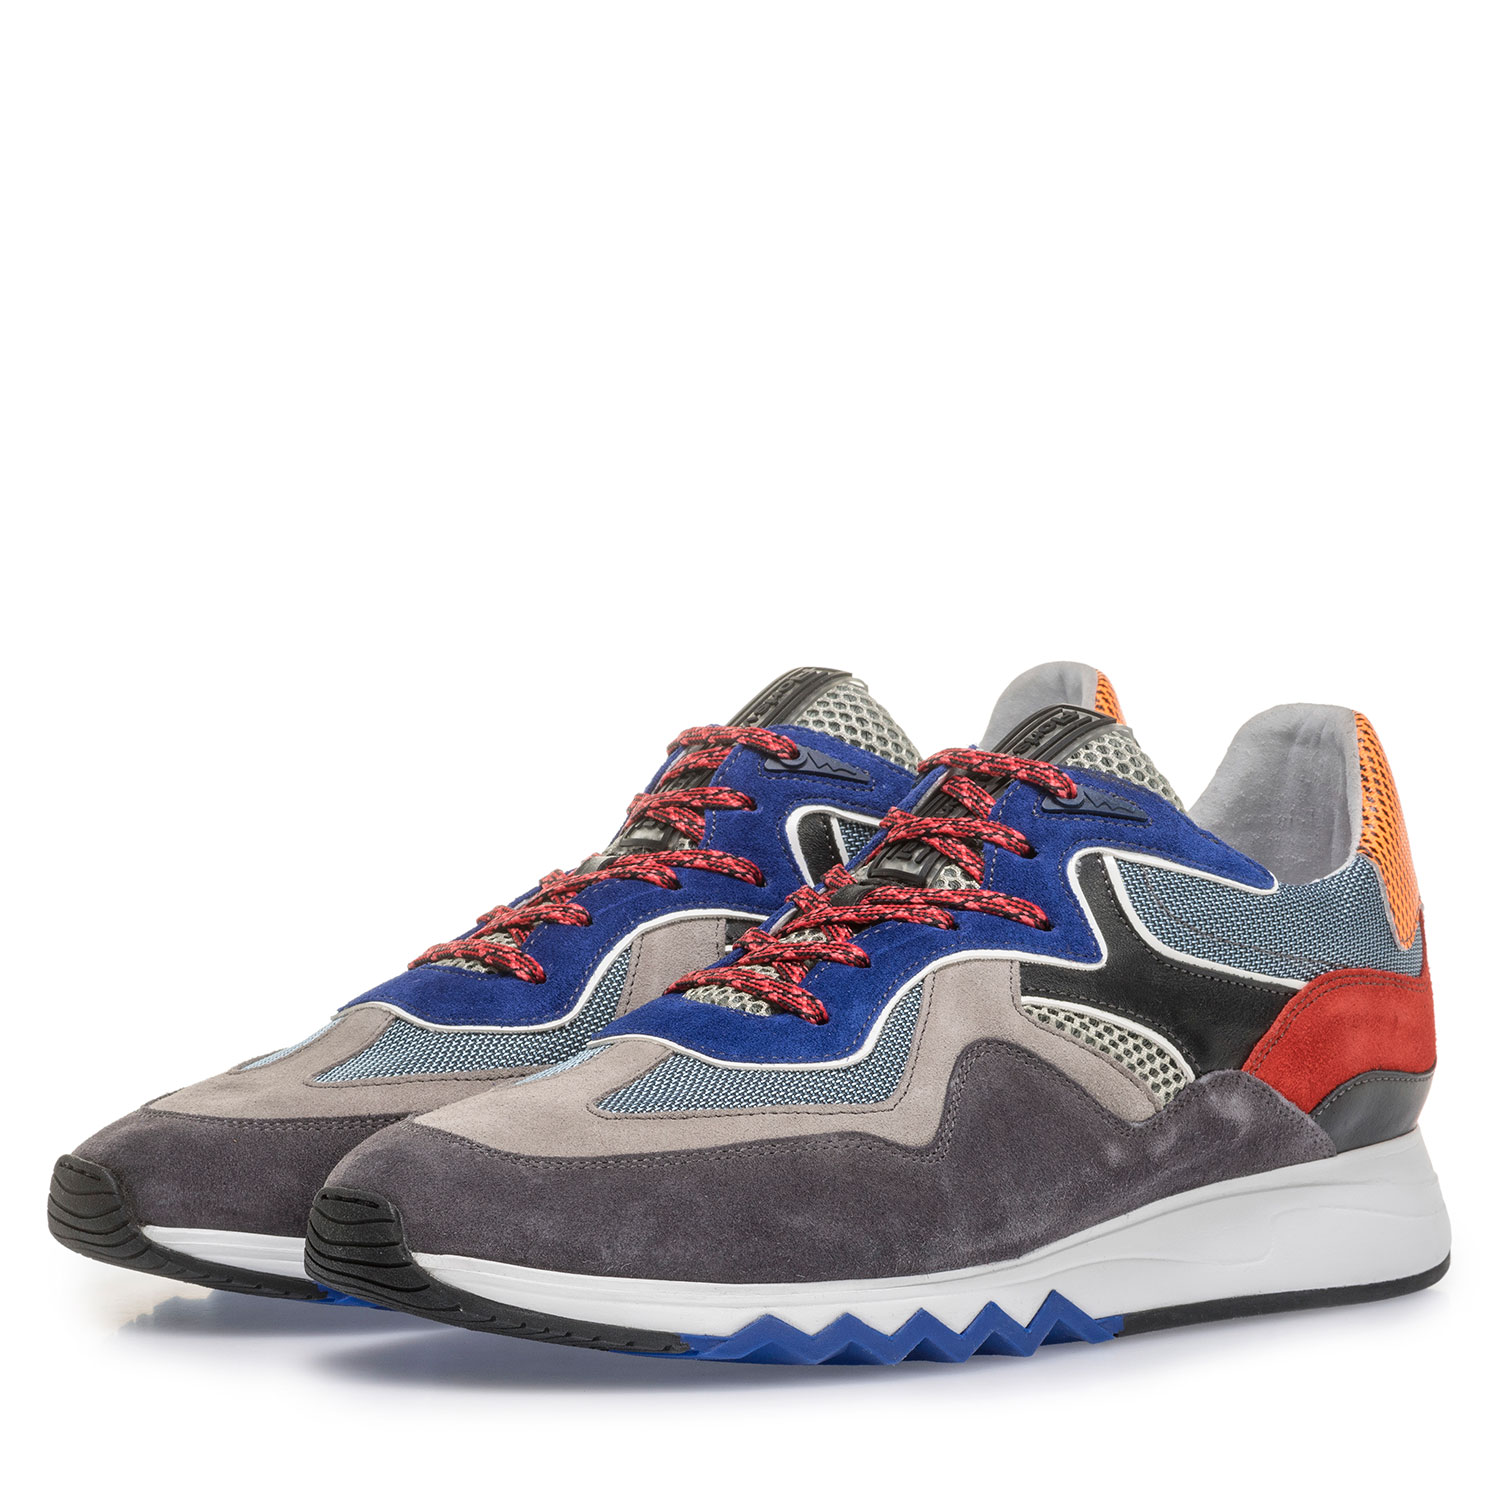 16290/03 - Multi-colour sneaker with blue details